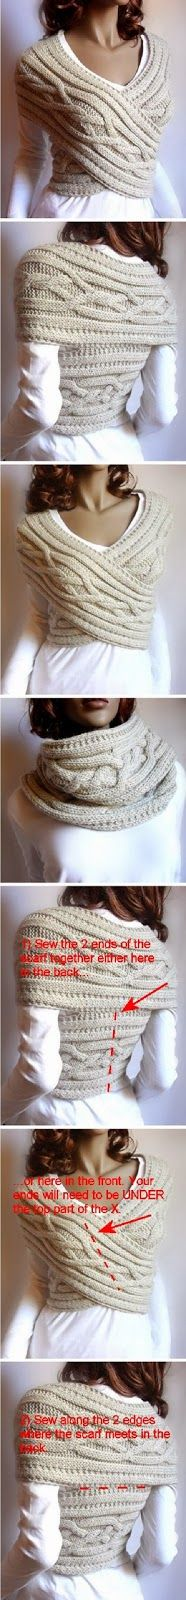 Loop knitting instructions: Knit shawl collar with cable pattern- Loop Strickanleitung: Schalkragen mit Zopfmuster stricken Loop knitting instructions E - Knitting Projects, Crochet Projects, Sewing Projects, Sewing Tips, Knitting Patterns, Crochet Patterns, Cowl Patterns, Vest Pattern, Fun Patterns